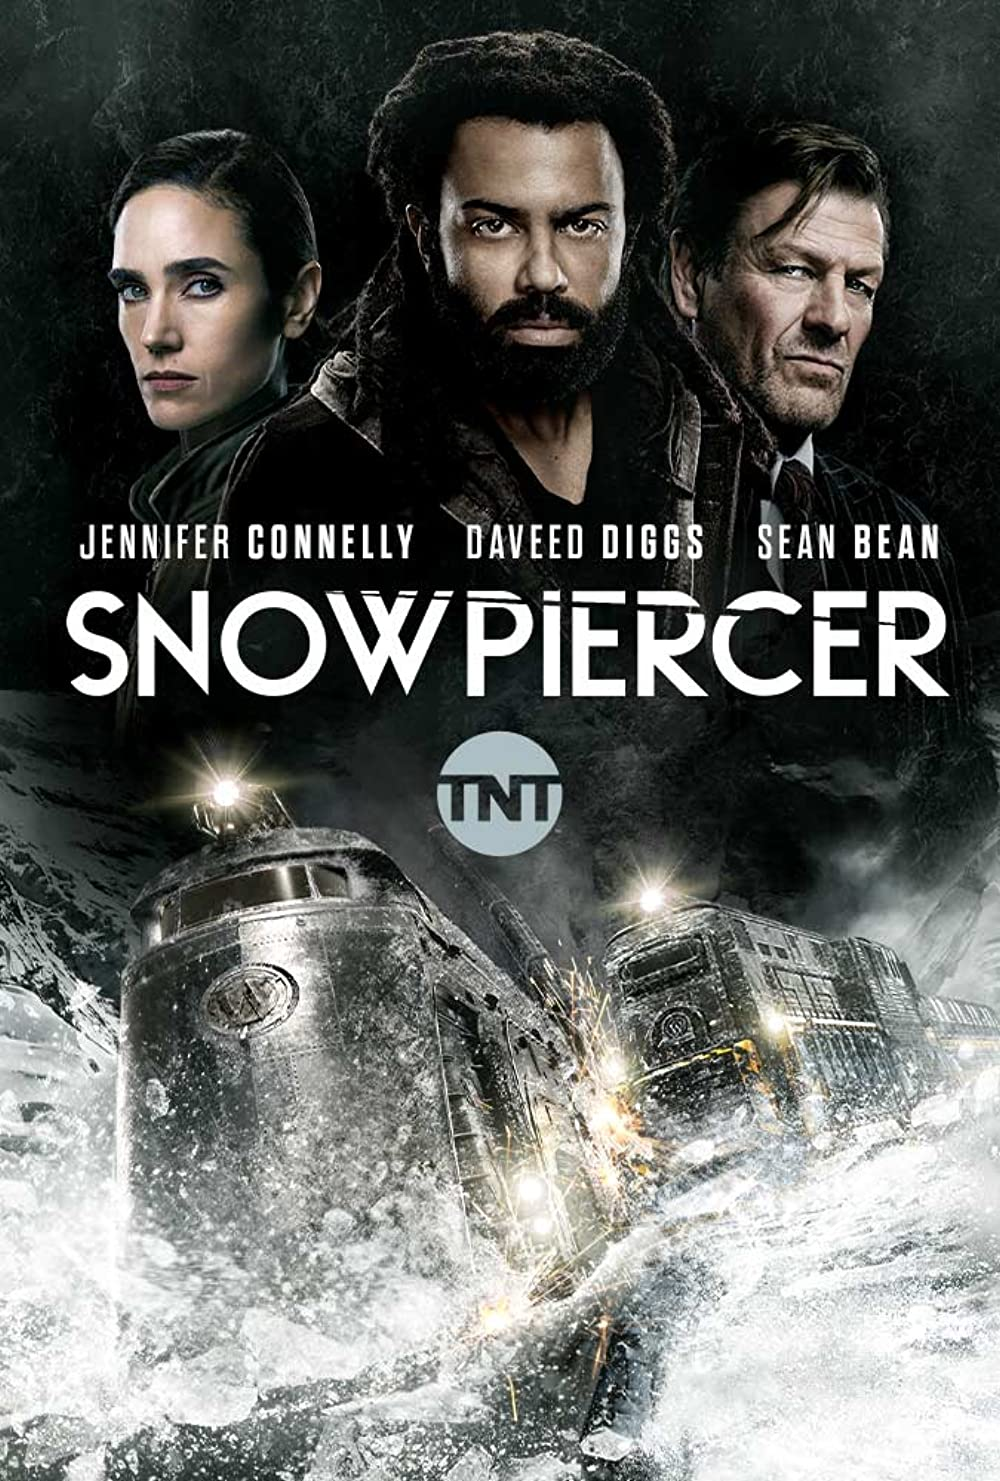 Snowpiercer 2021 S02EP10 Hindi Dual Audio NF Series 720p HDRip MSubs 340MB Download